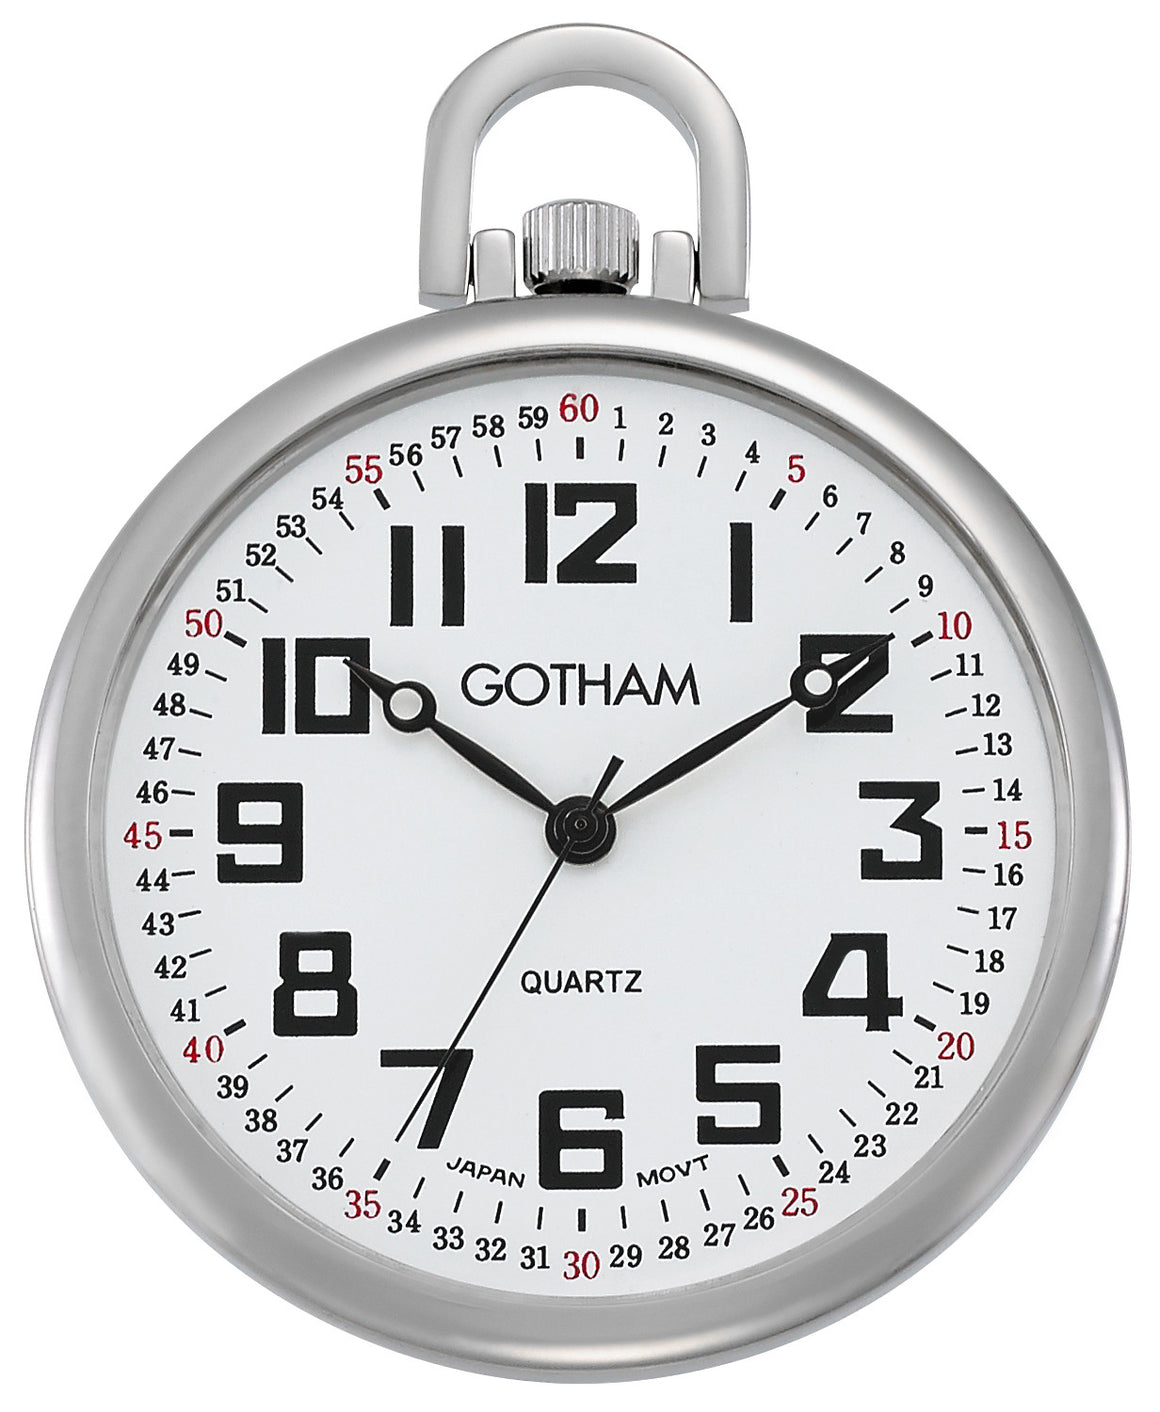 Gotham Men's Silver-Tone Ultra Thin Railroad Open Face Quartz Pocket Watch # GWC15022S - Gotham Watch